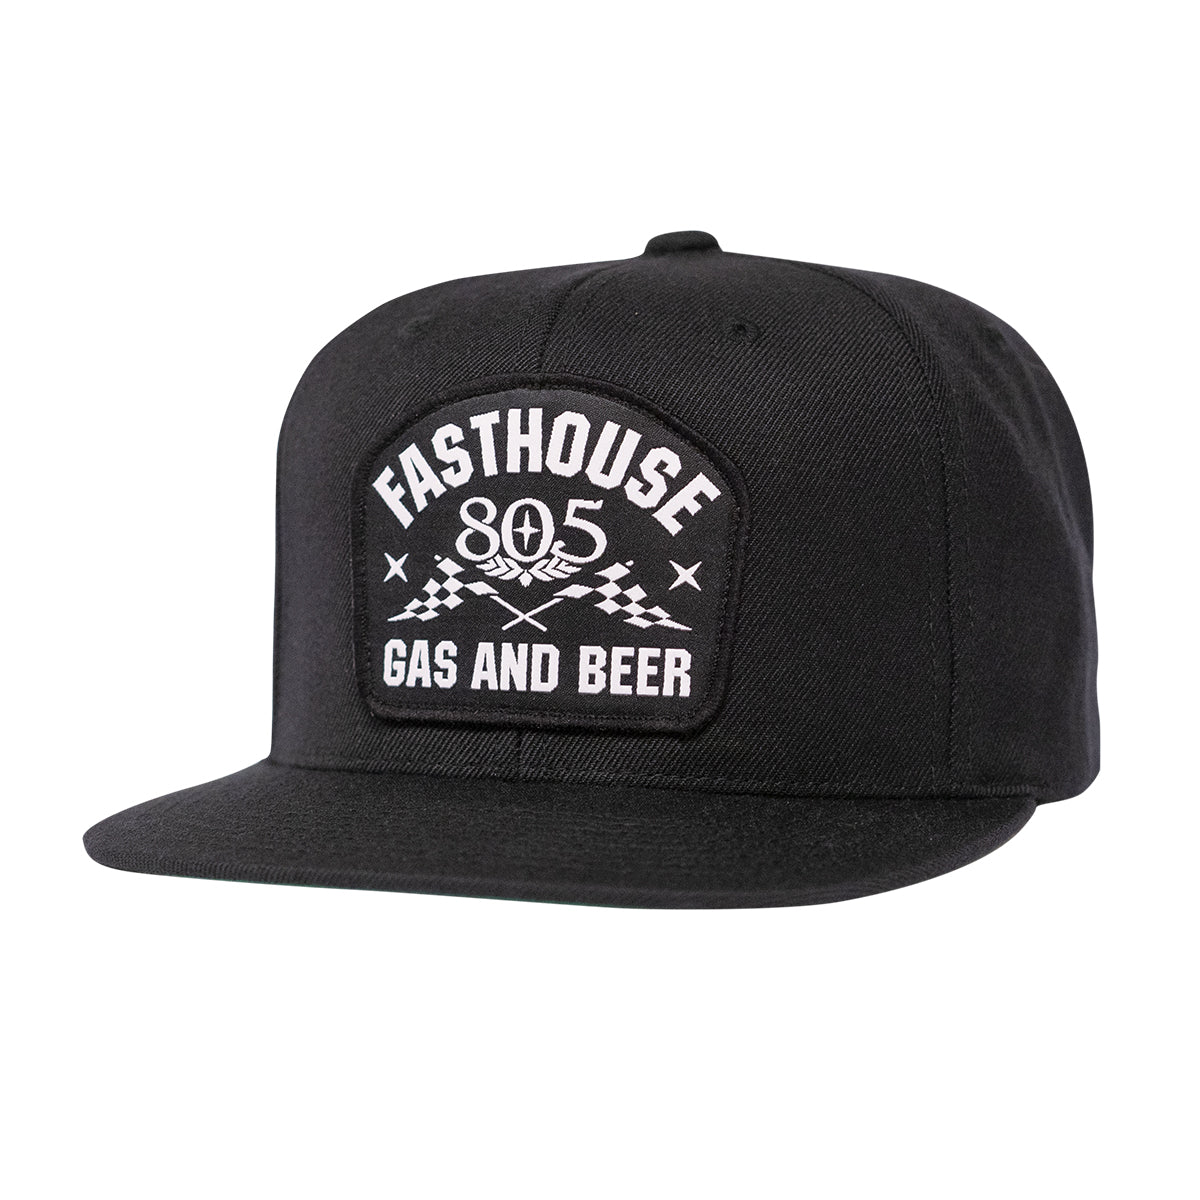 Fasthouse - 805 Podium Hat - Black